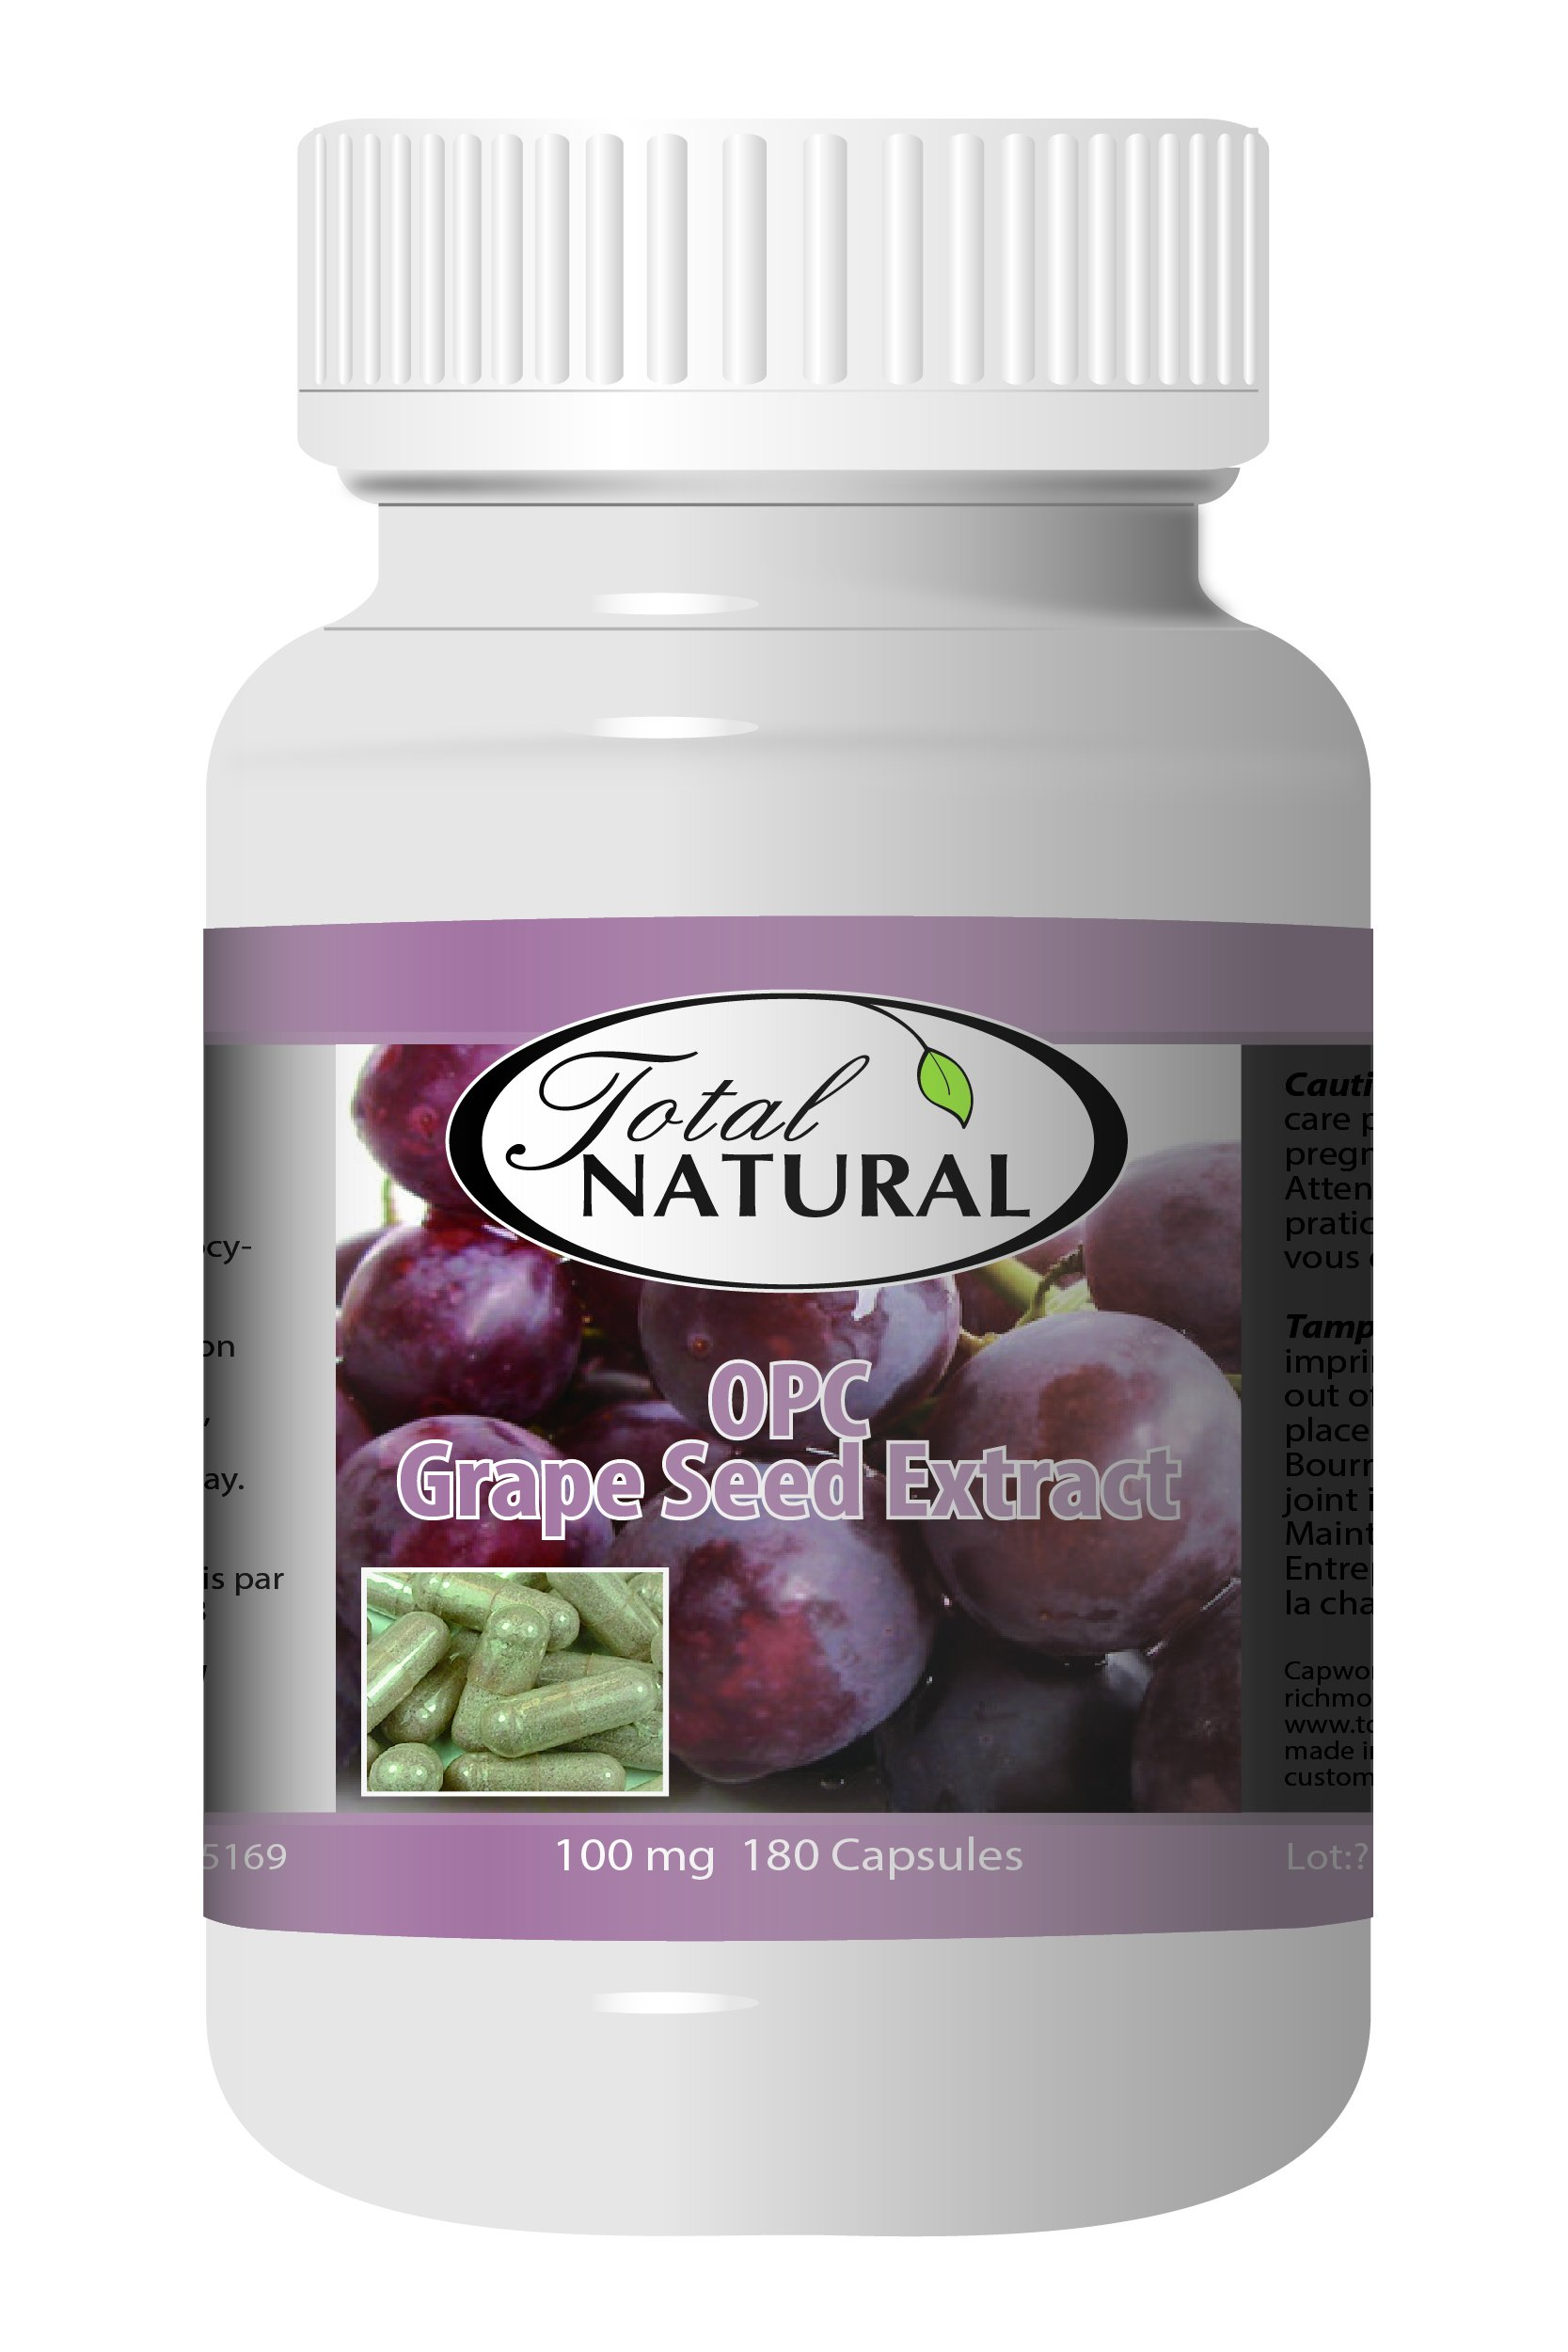 OPC Grape Seed Extract 100mg 180c - [12 bottles] Liver Care